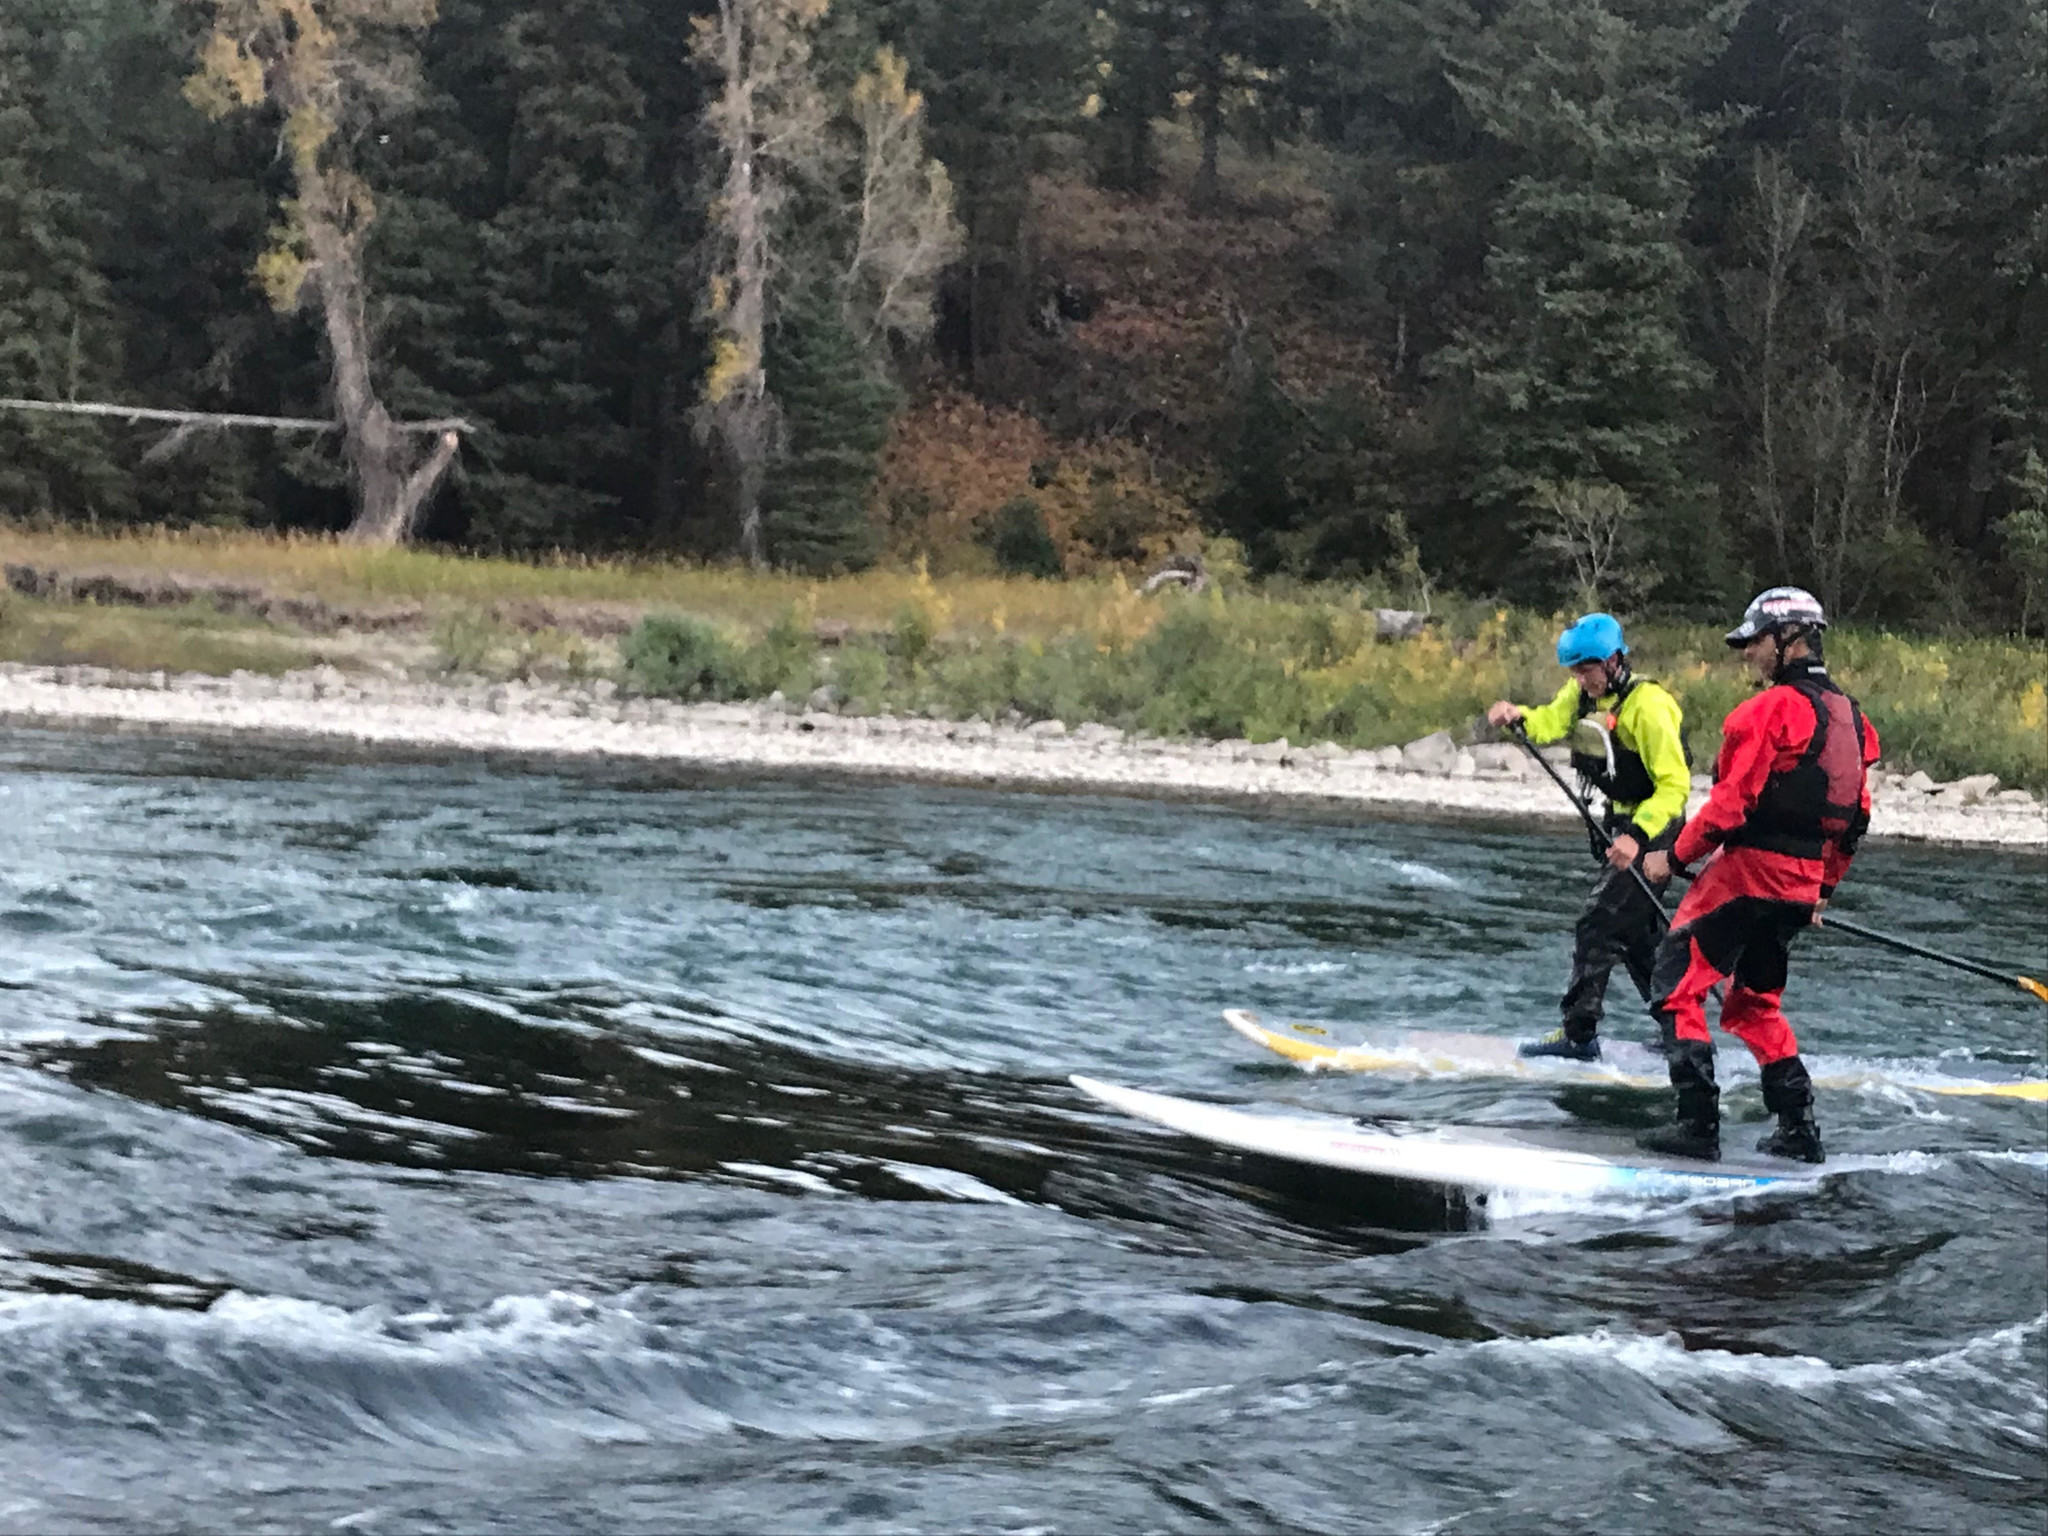 Owner Aaron Pruzan and Employee Porter Bankhead Surfing on the Snake River Jackson, WY